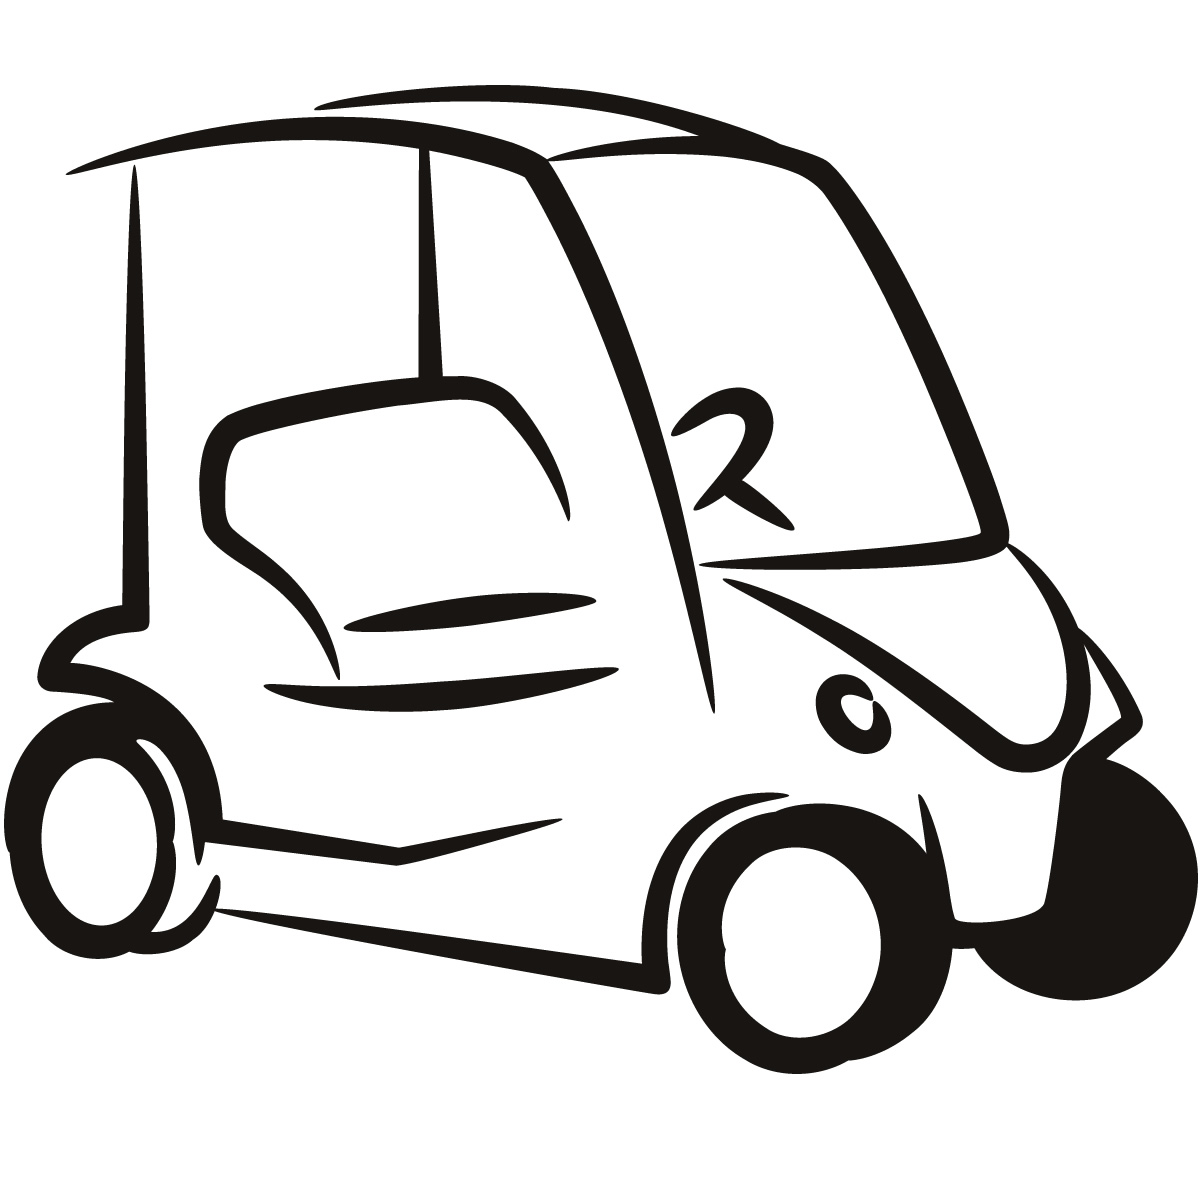 Golf Cart Clipart - Clipart . - Golf Cart Clipart